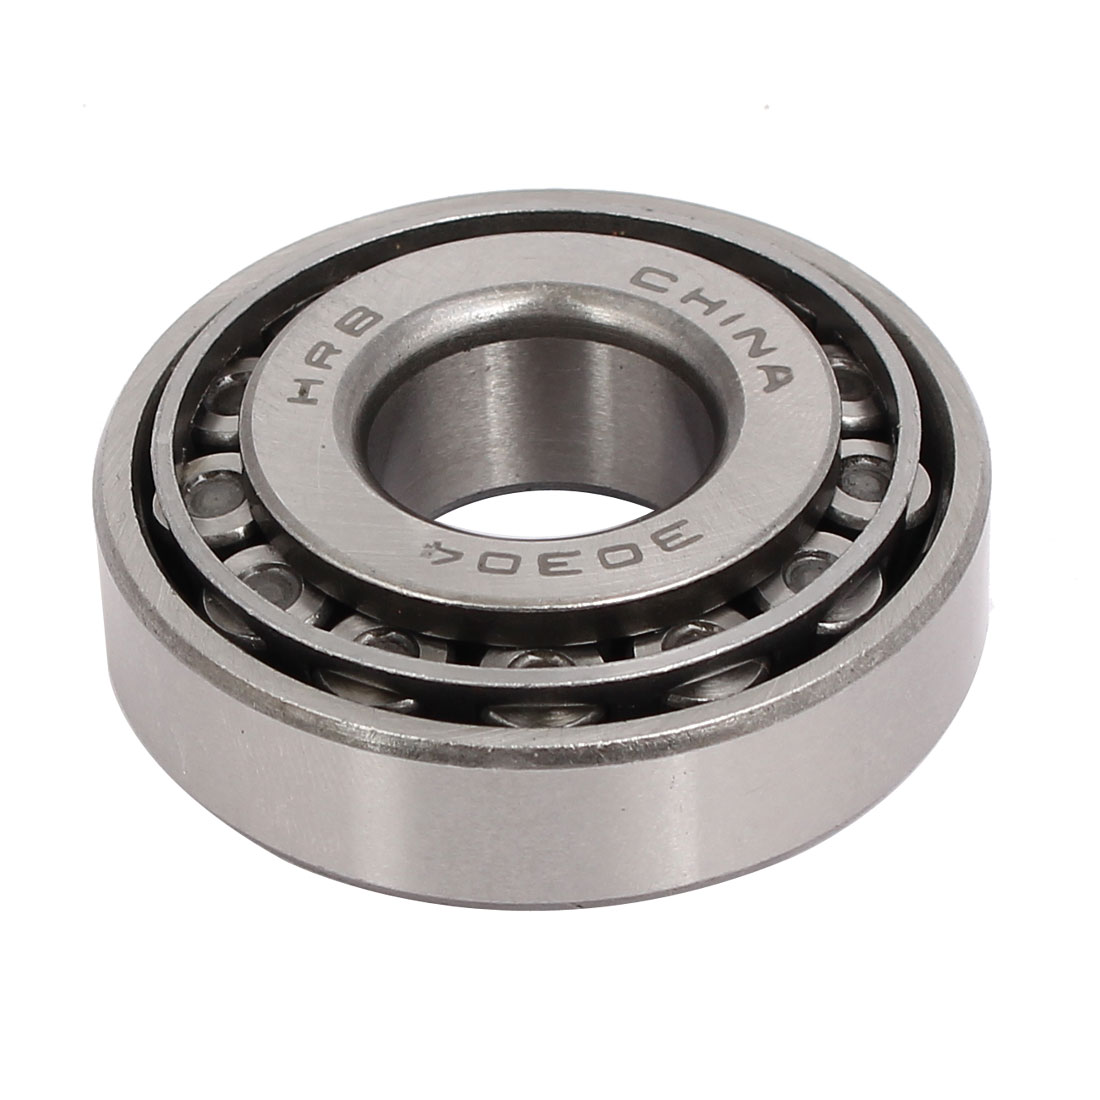 52mmx20mmx16mm 30304 Single Row Tapered Roller Bearing Silver Tone